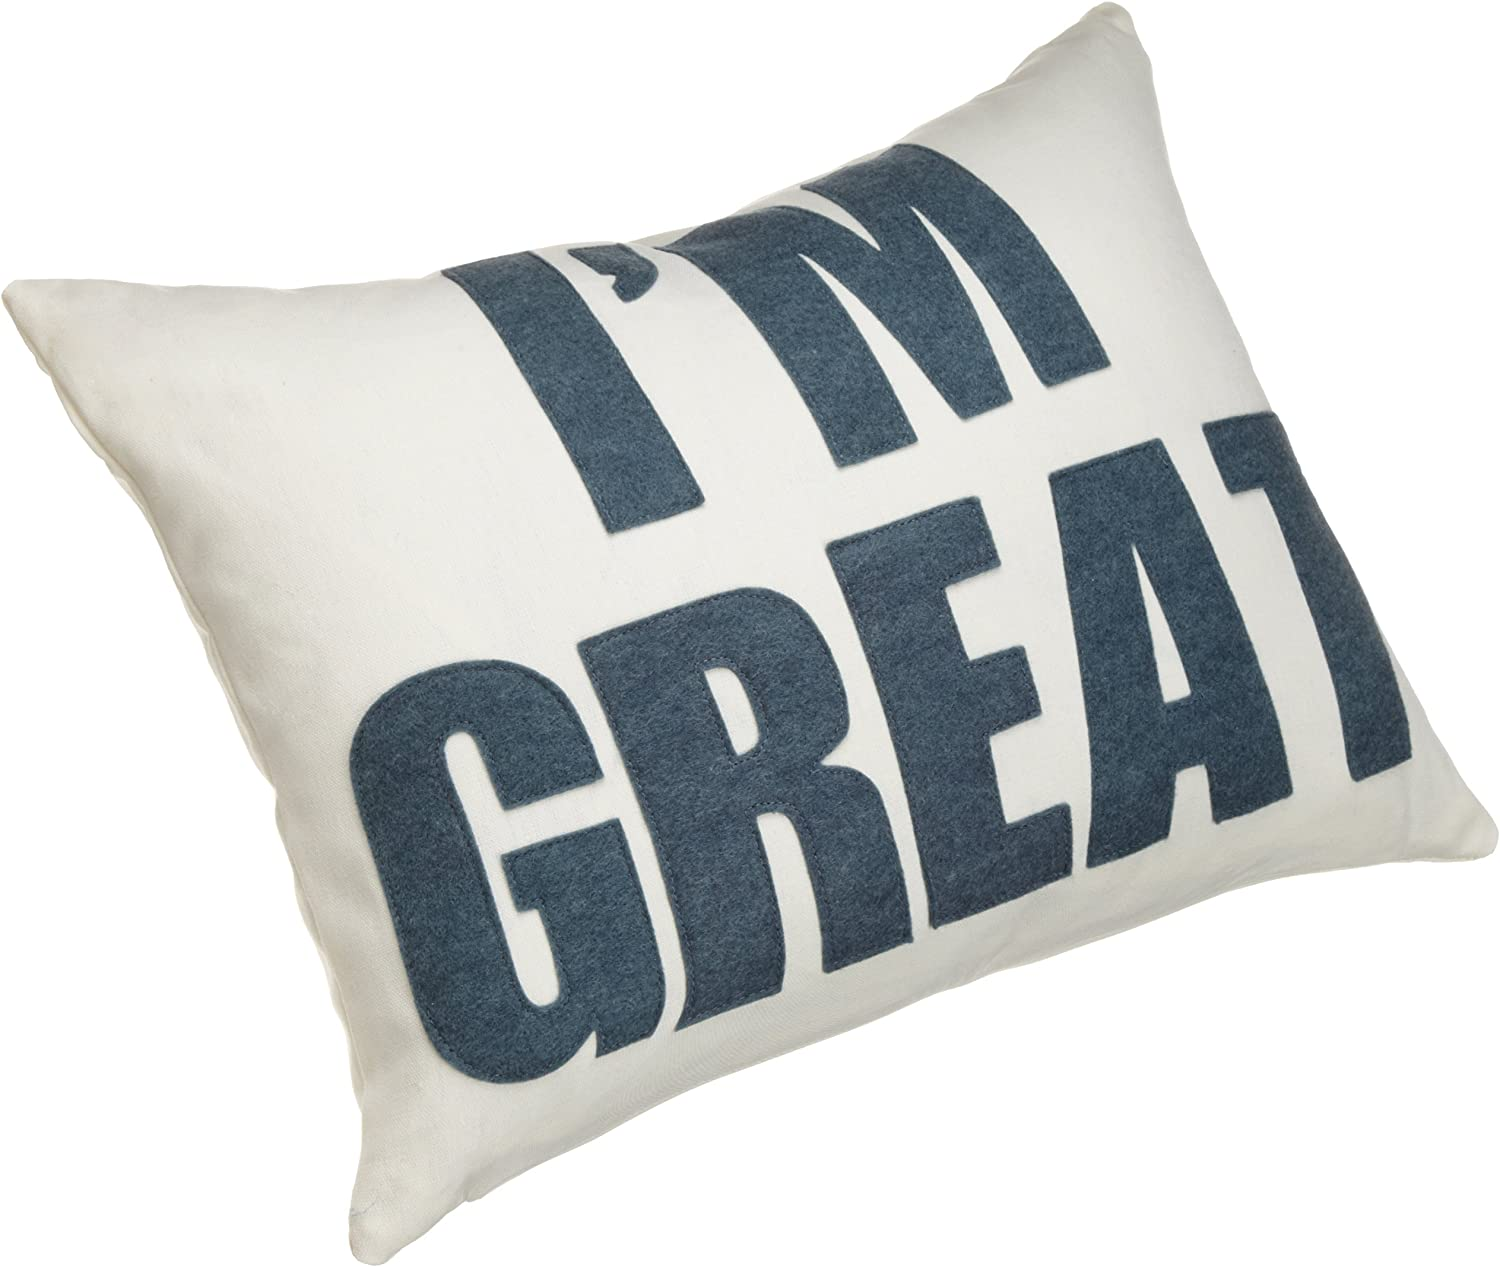 Amazon Com Alexandra Ferguson I M Great 14 By 18 Inch Decorative Pillow Cream Hemp Canvas Denim Blue Felt Home Kitchen